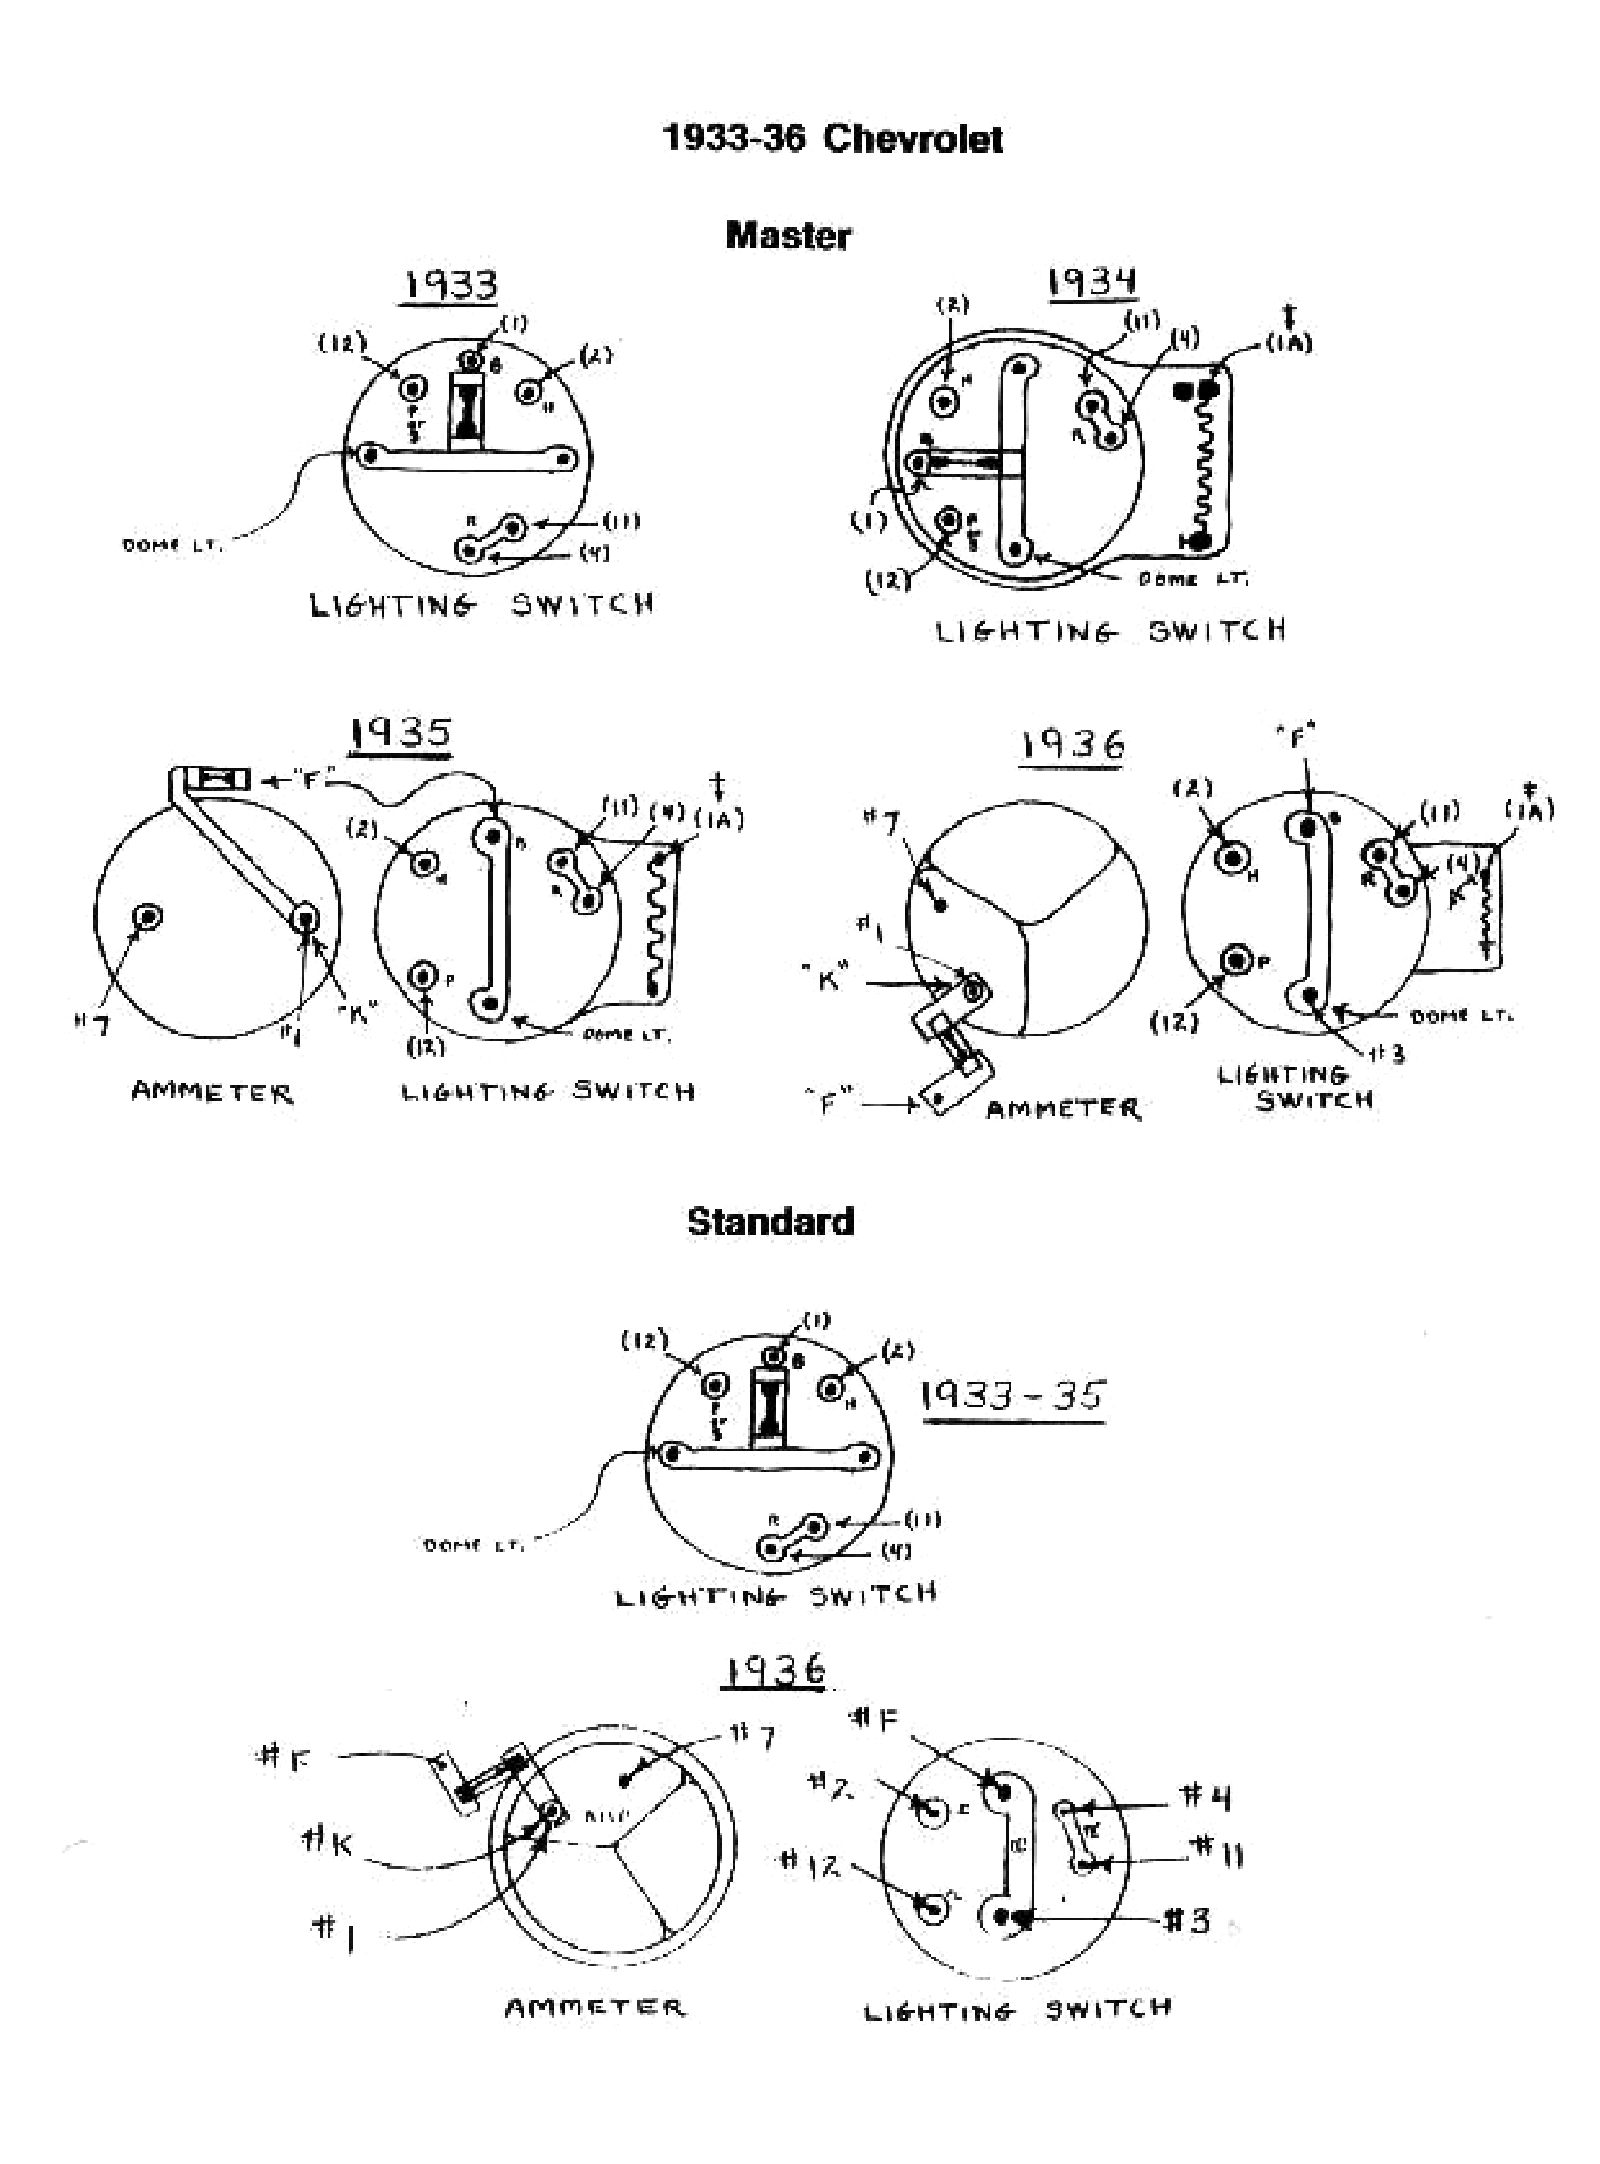 hight resolution of 1935 1936 1935 36 switches 1935 36 switches chevy wiring diagrams